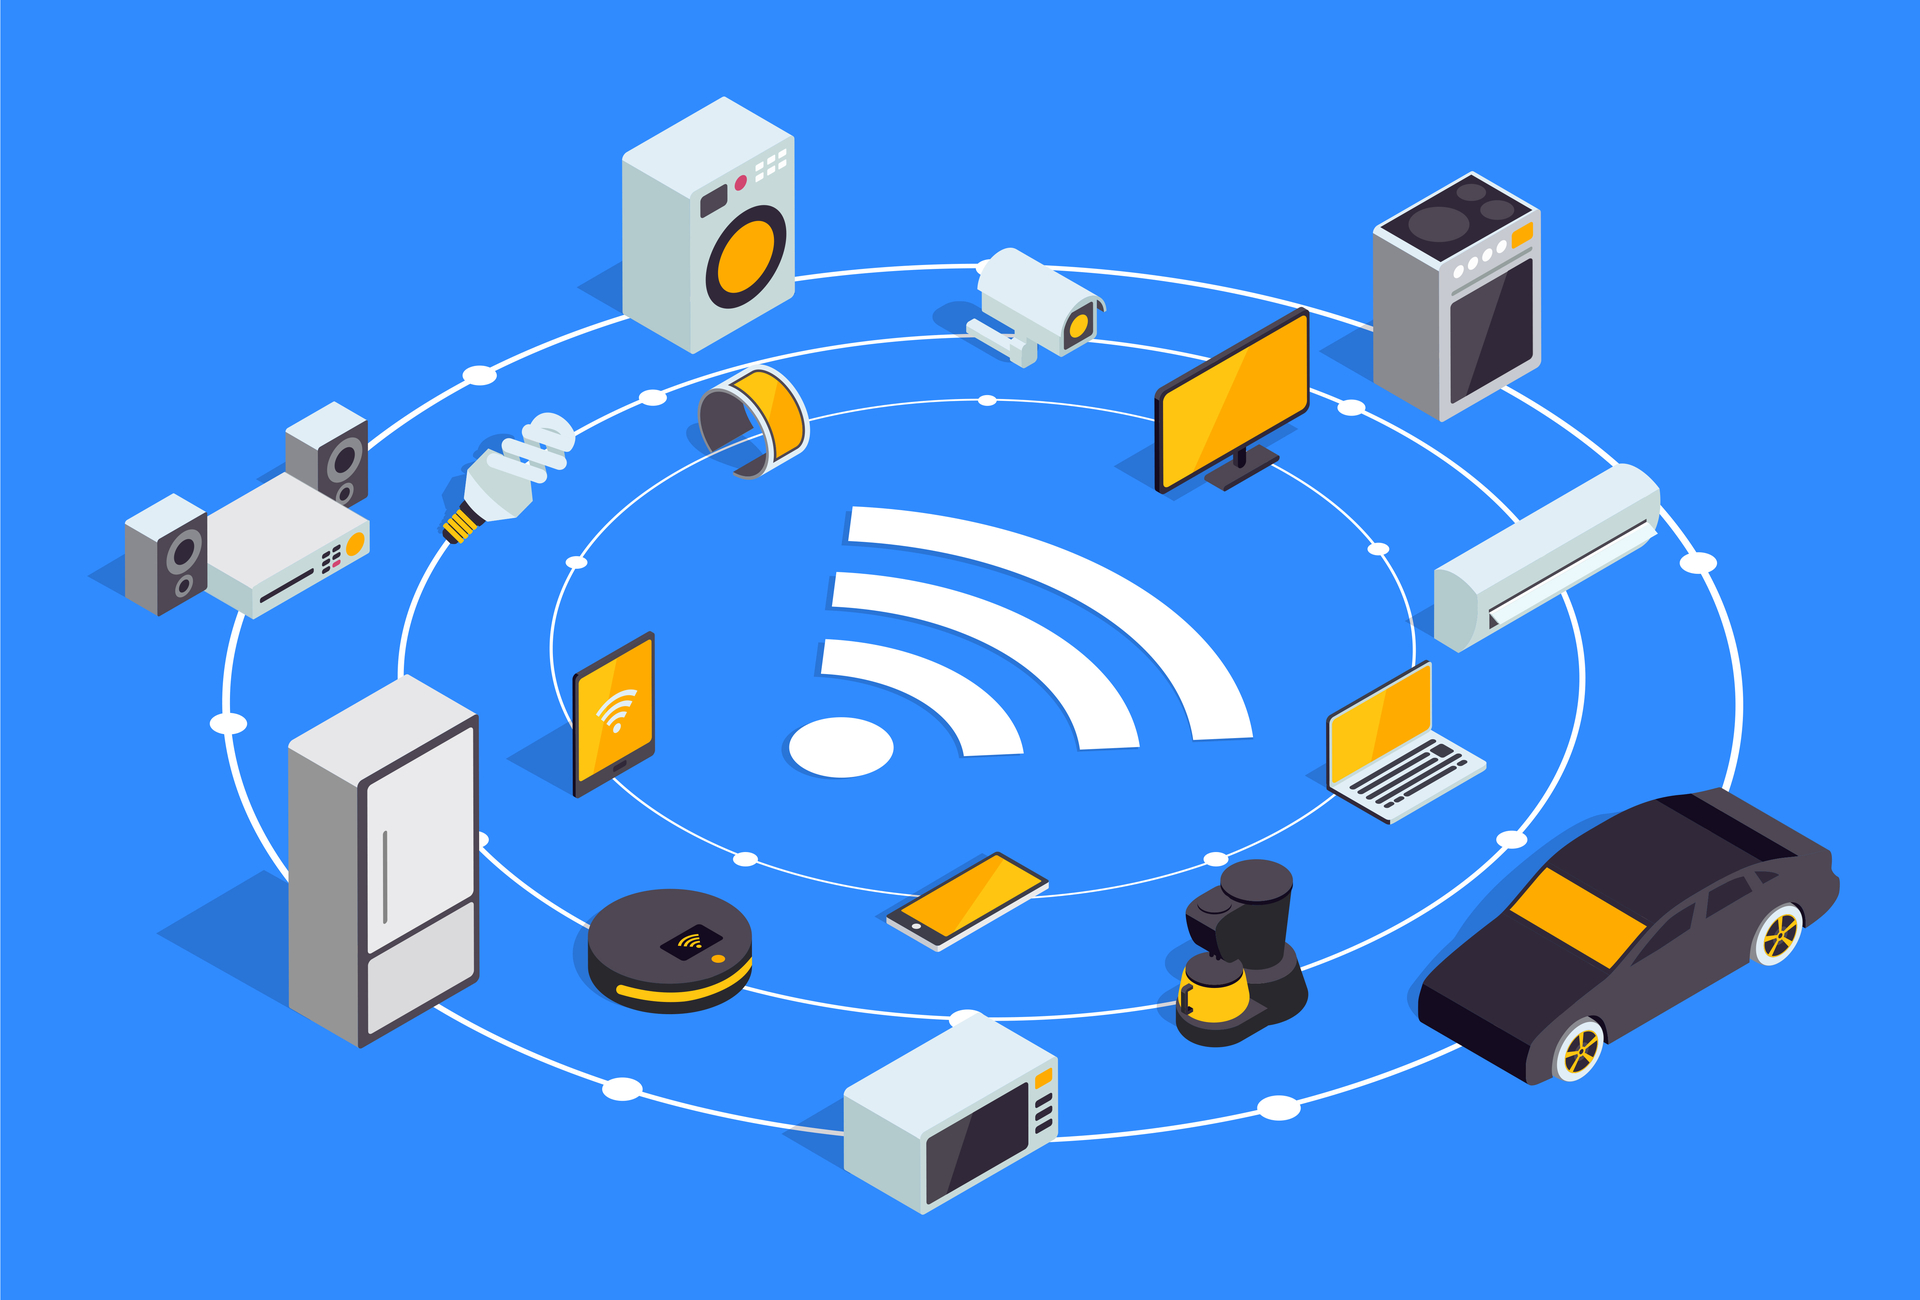 IoT devices are cybercriminals' favourite targets – and attacks are skyrocketing